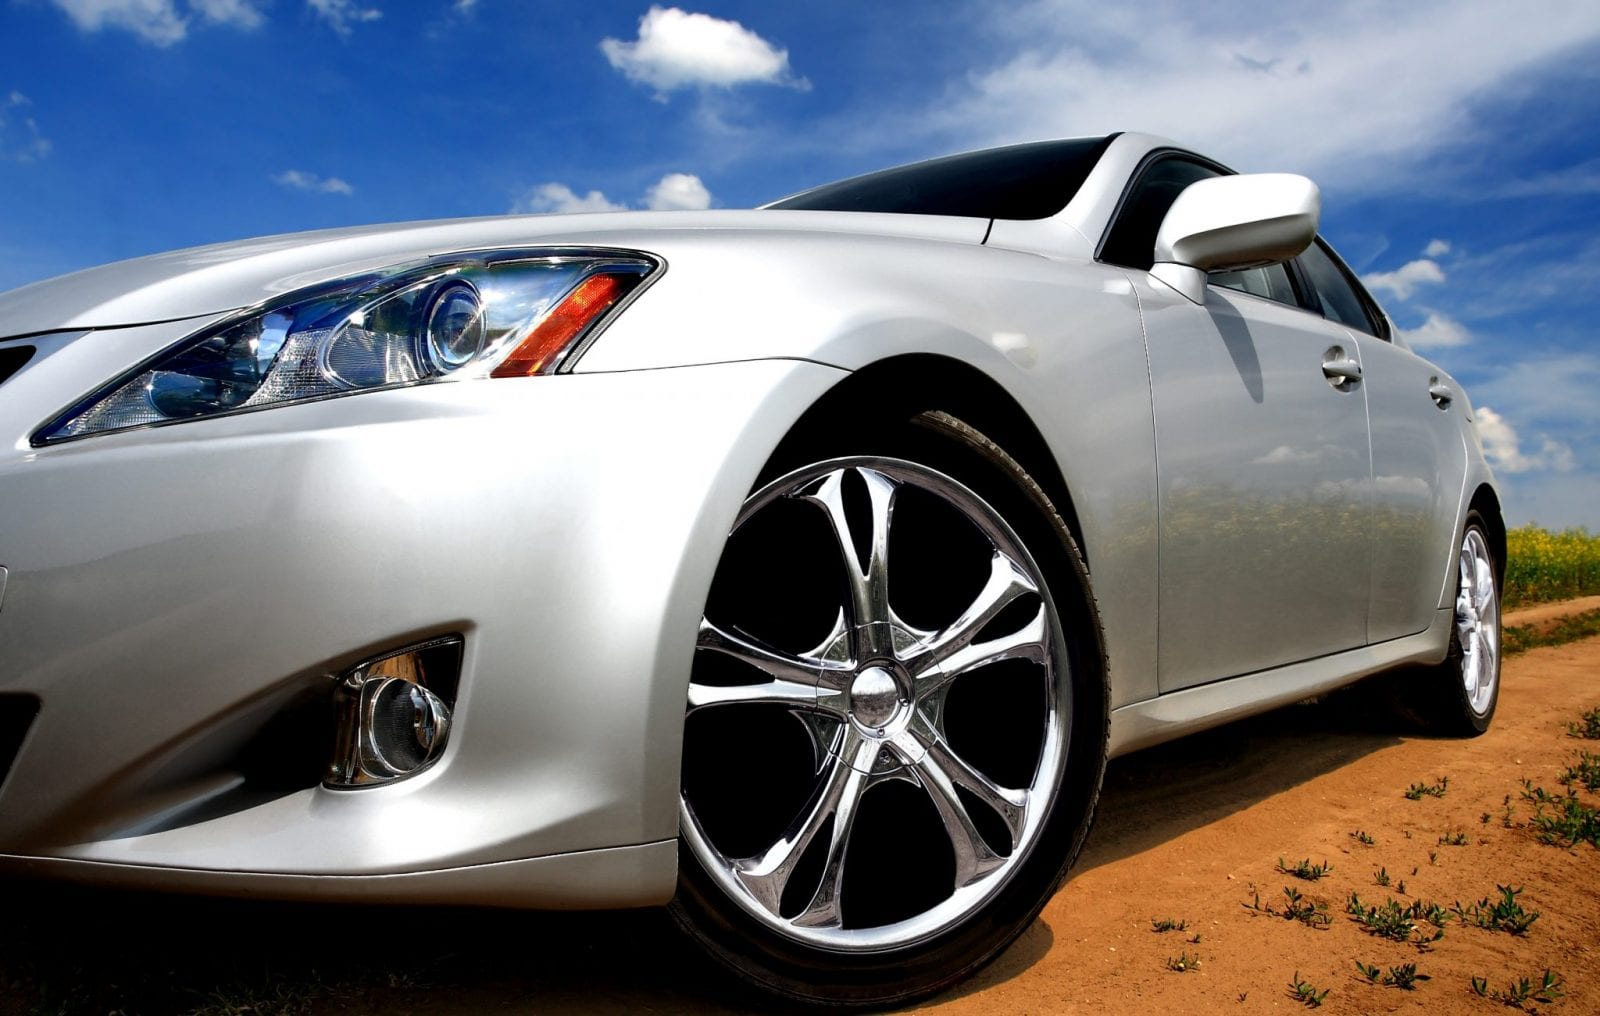 10 unbelievable facts about cars that you didn't know before